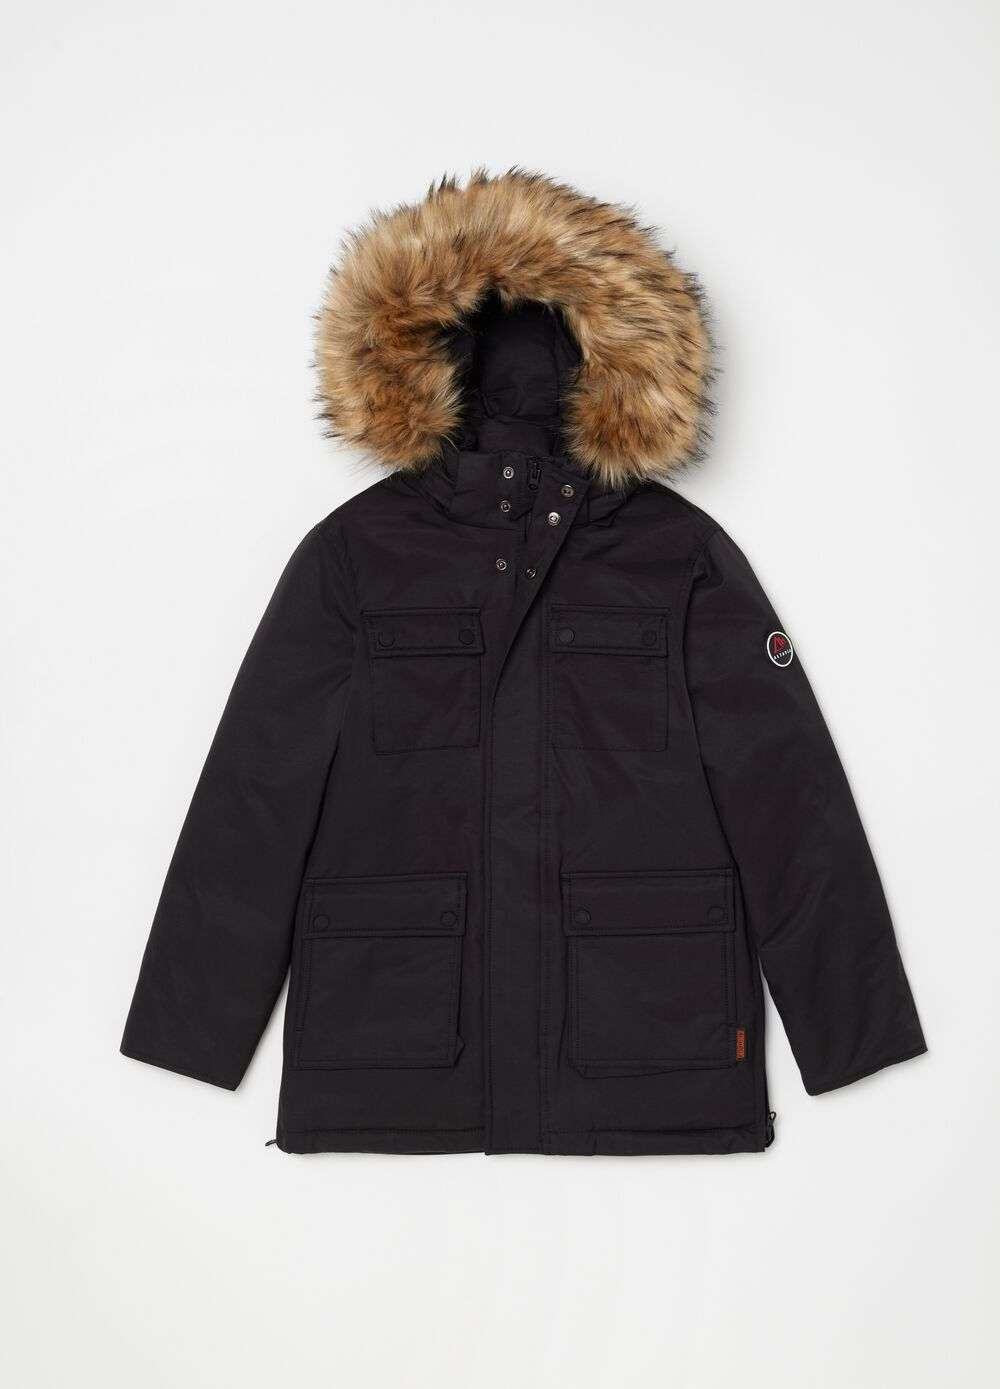 Altavia parka with hood and pockets